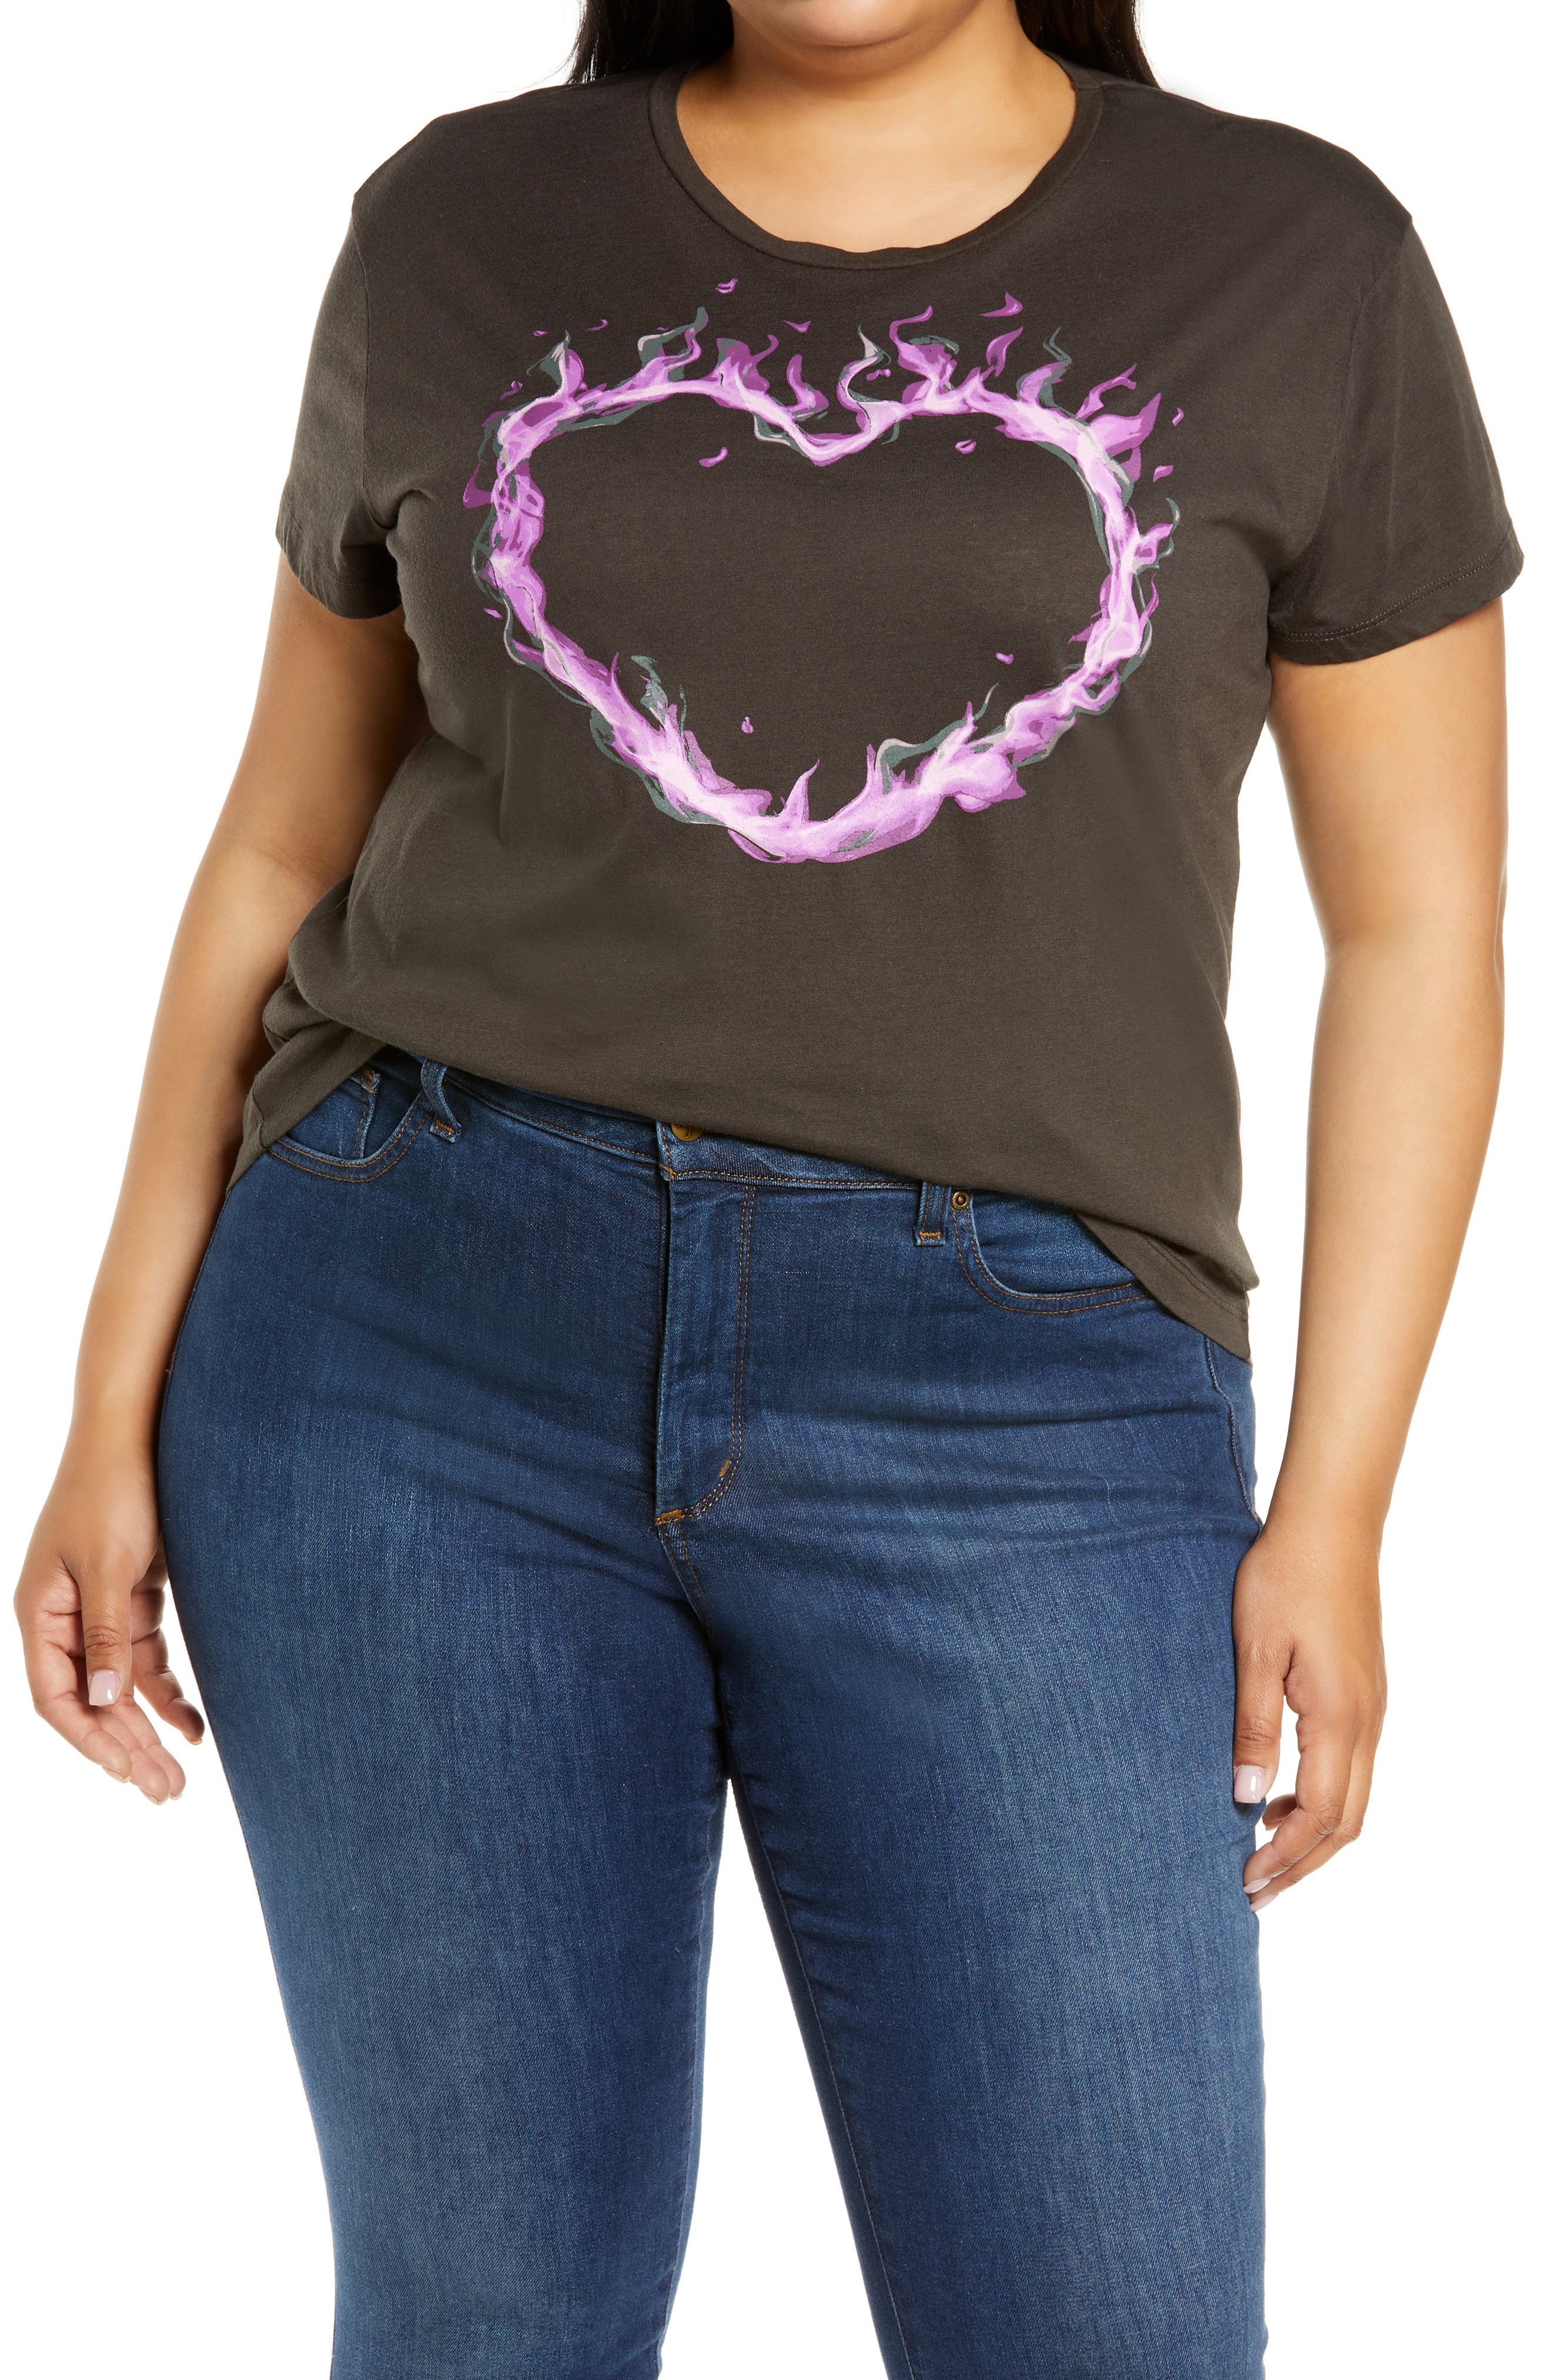 Flaming Heart Graphic Tee